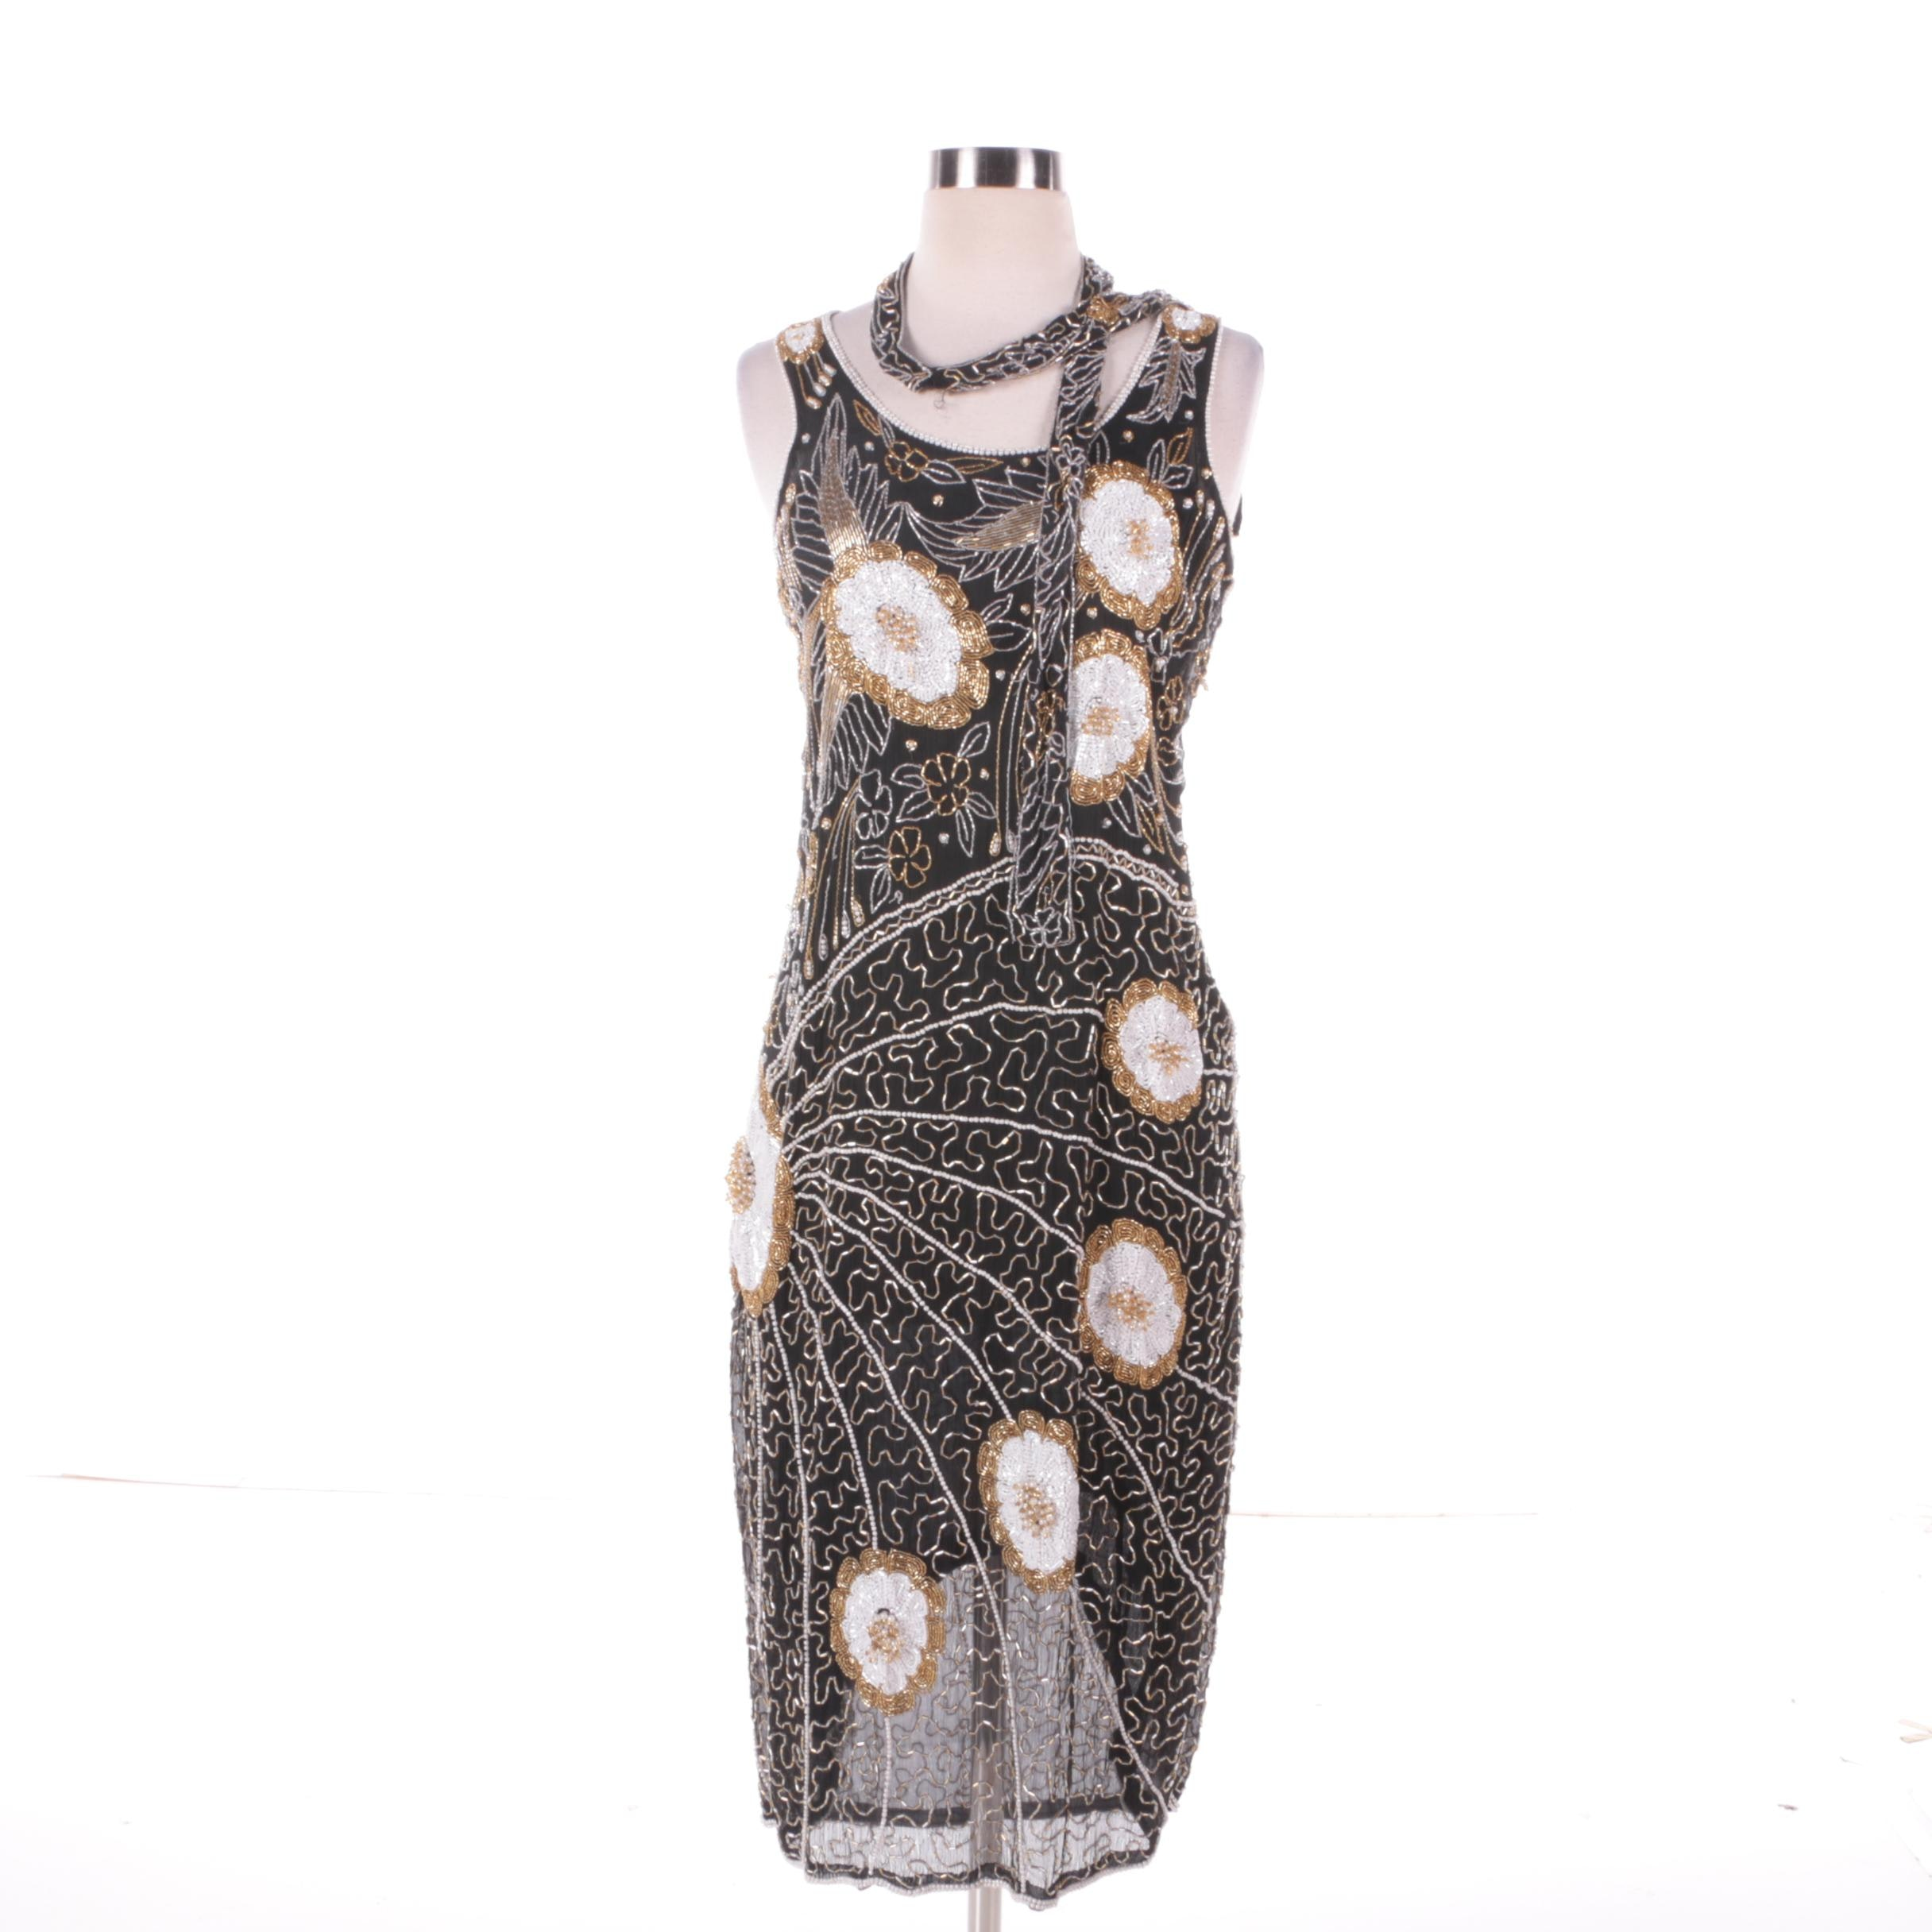 1980s Vintage Silk Beaded Peacock Burst Sleeveless Cocktail Dress